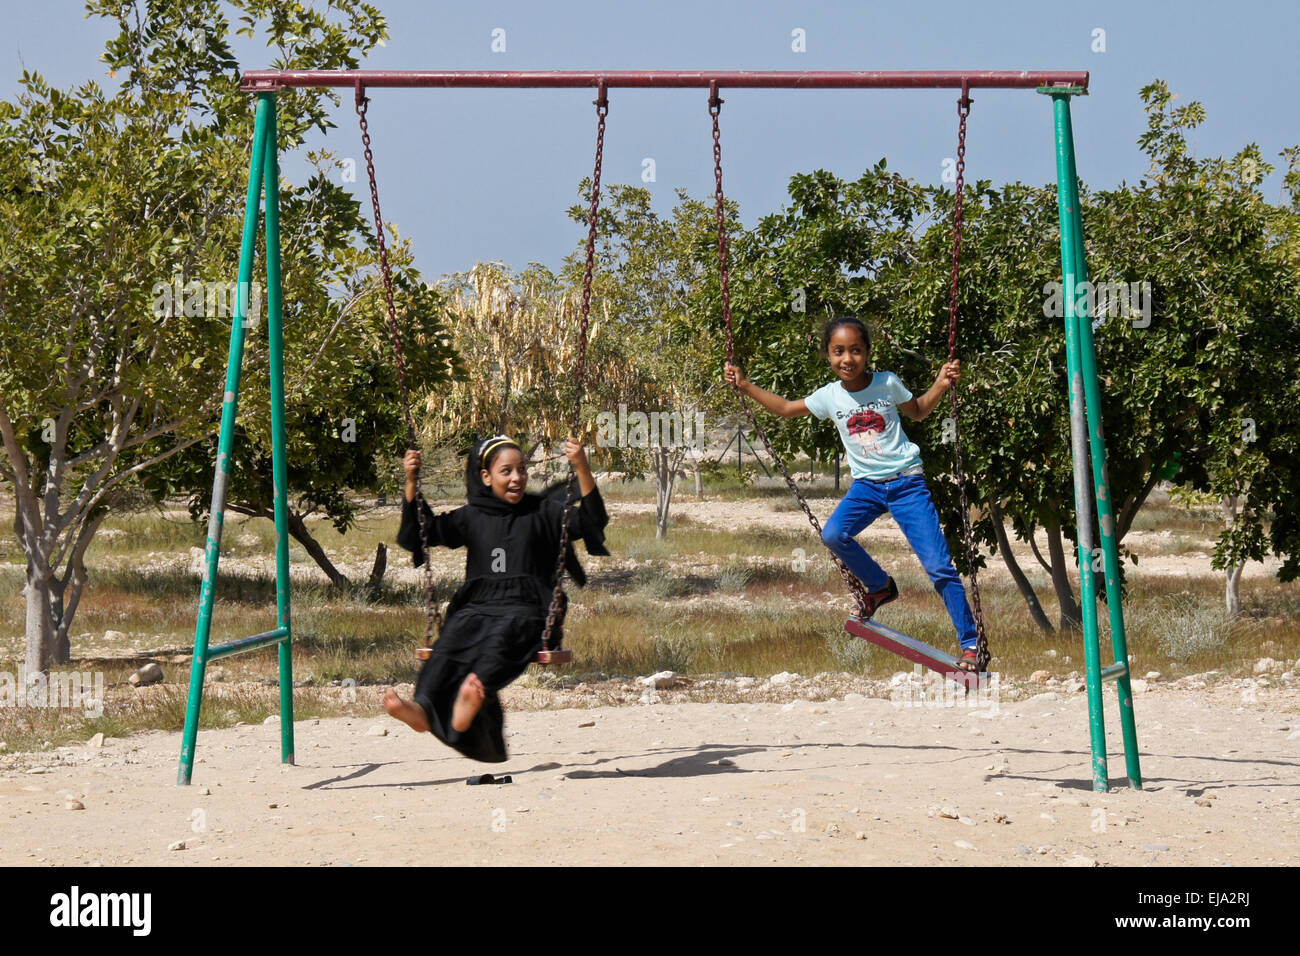 Girls playing on swings, Sultanate of Oman - Stock Image